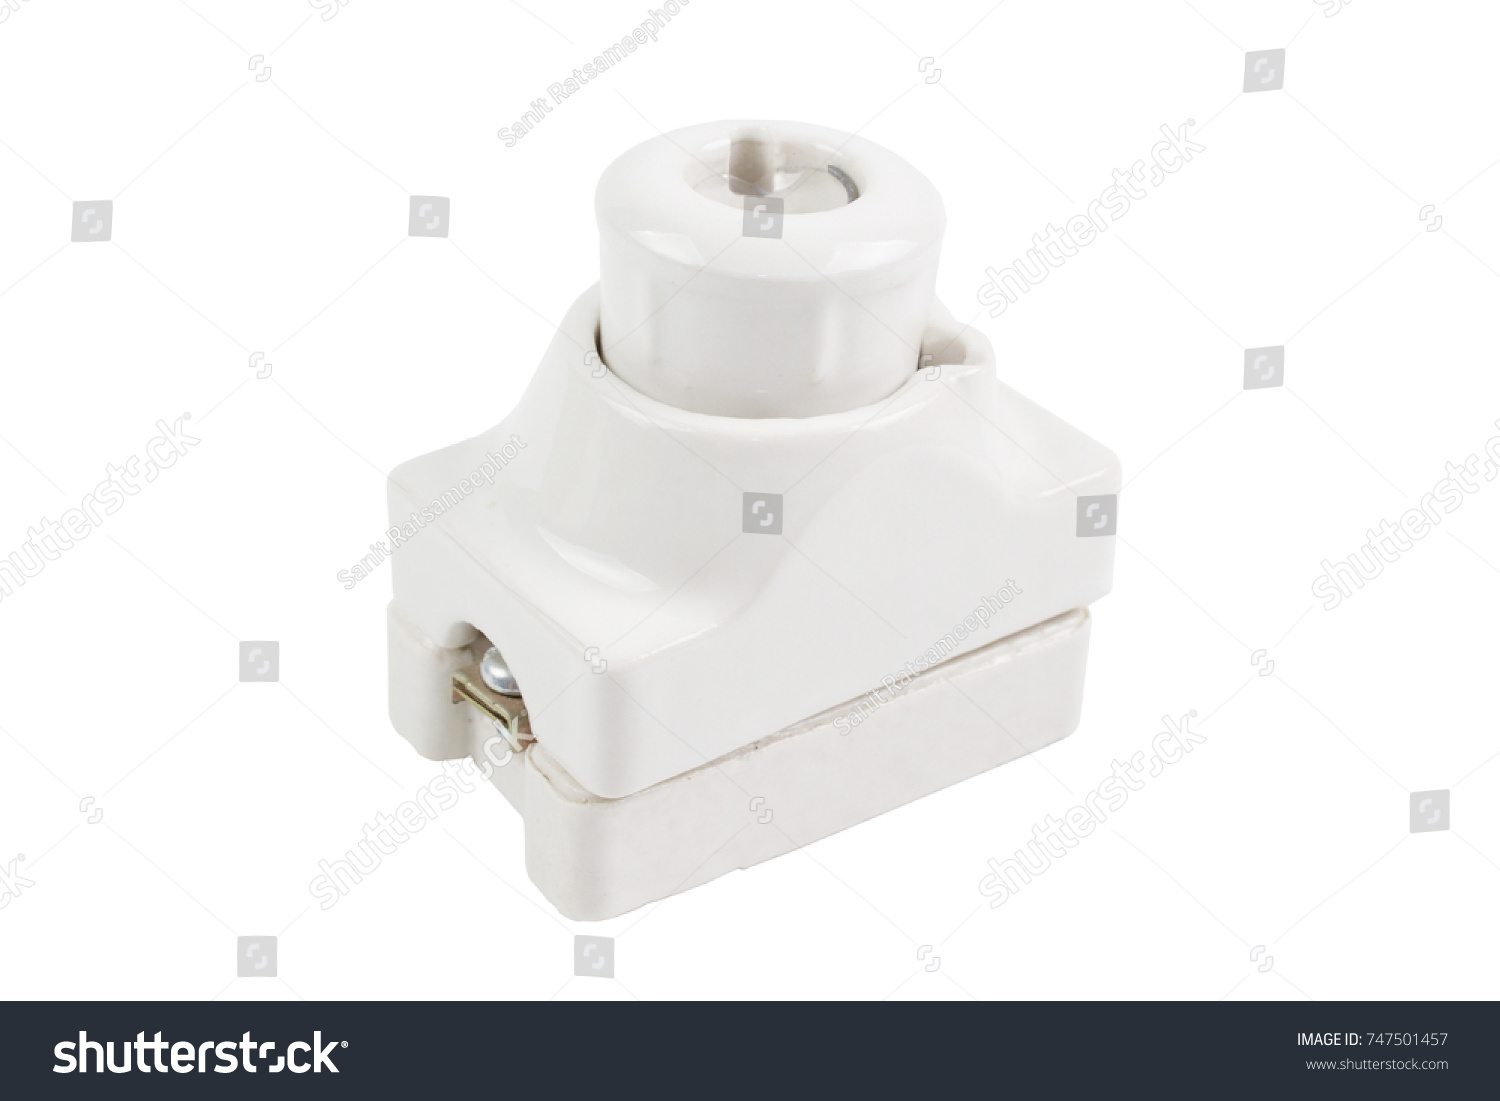 Electrical Cutout cartridge ceramic fuse holder or box. This is Old type of  fuses for